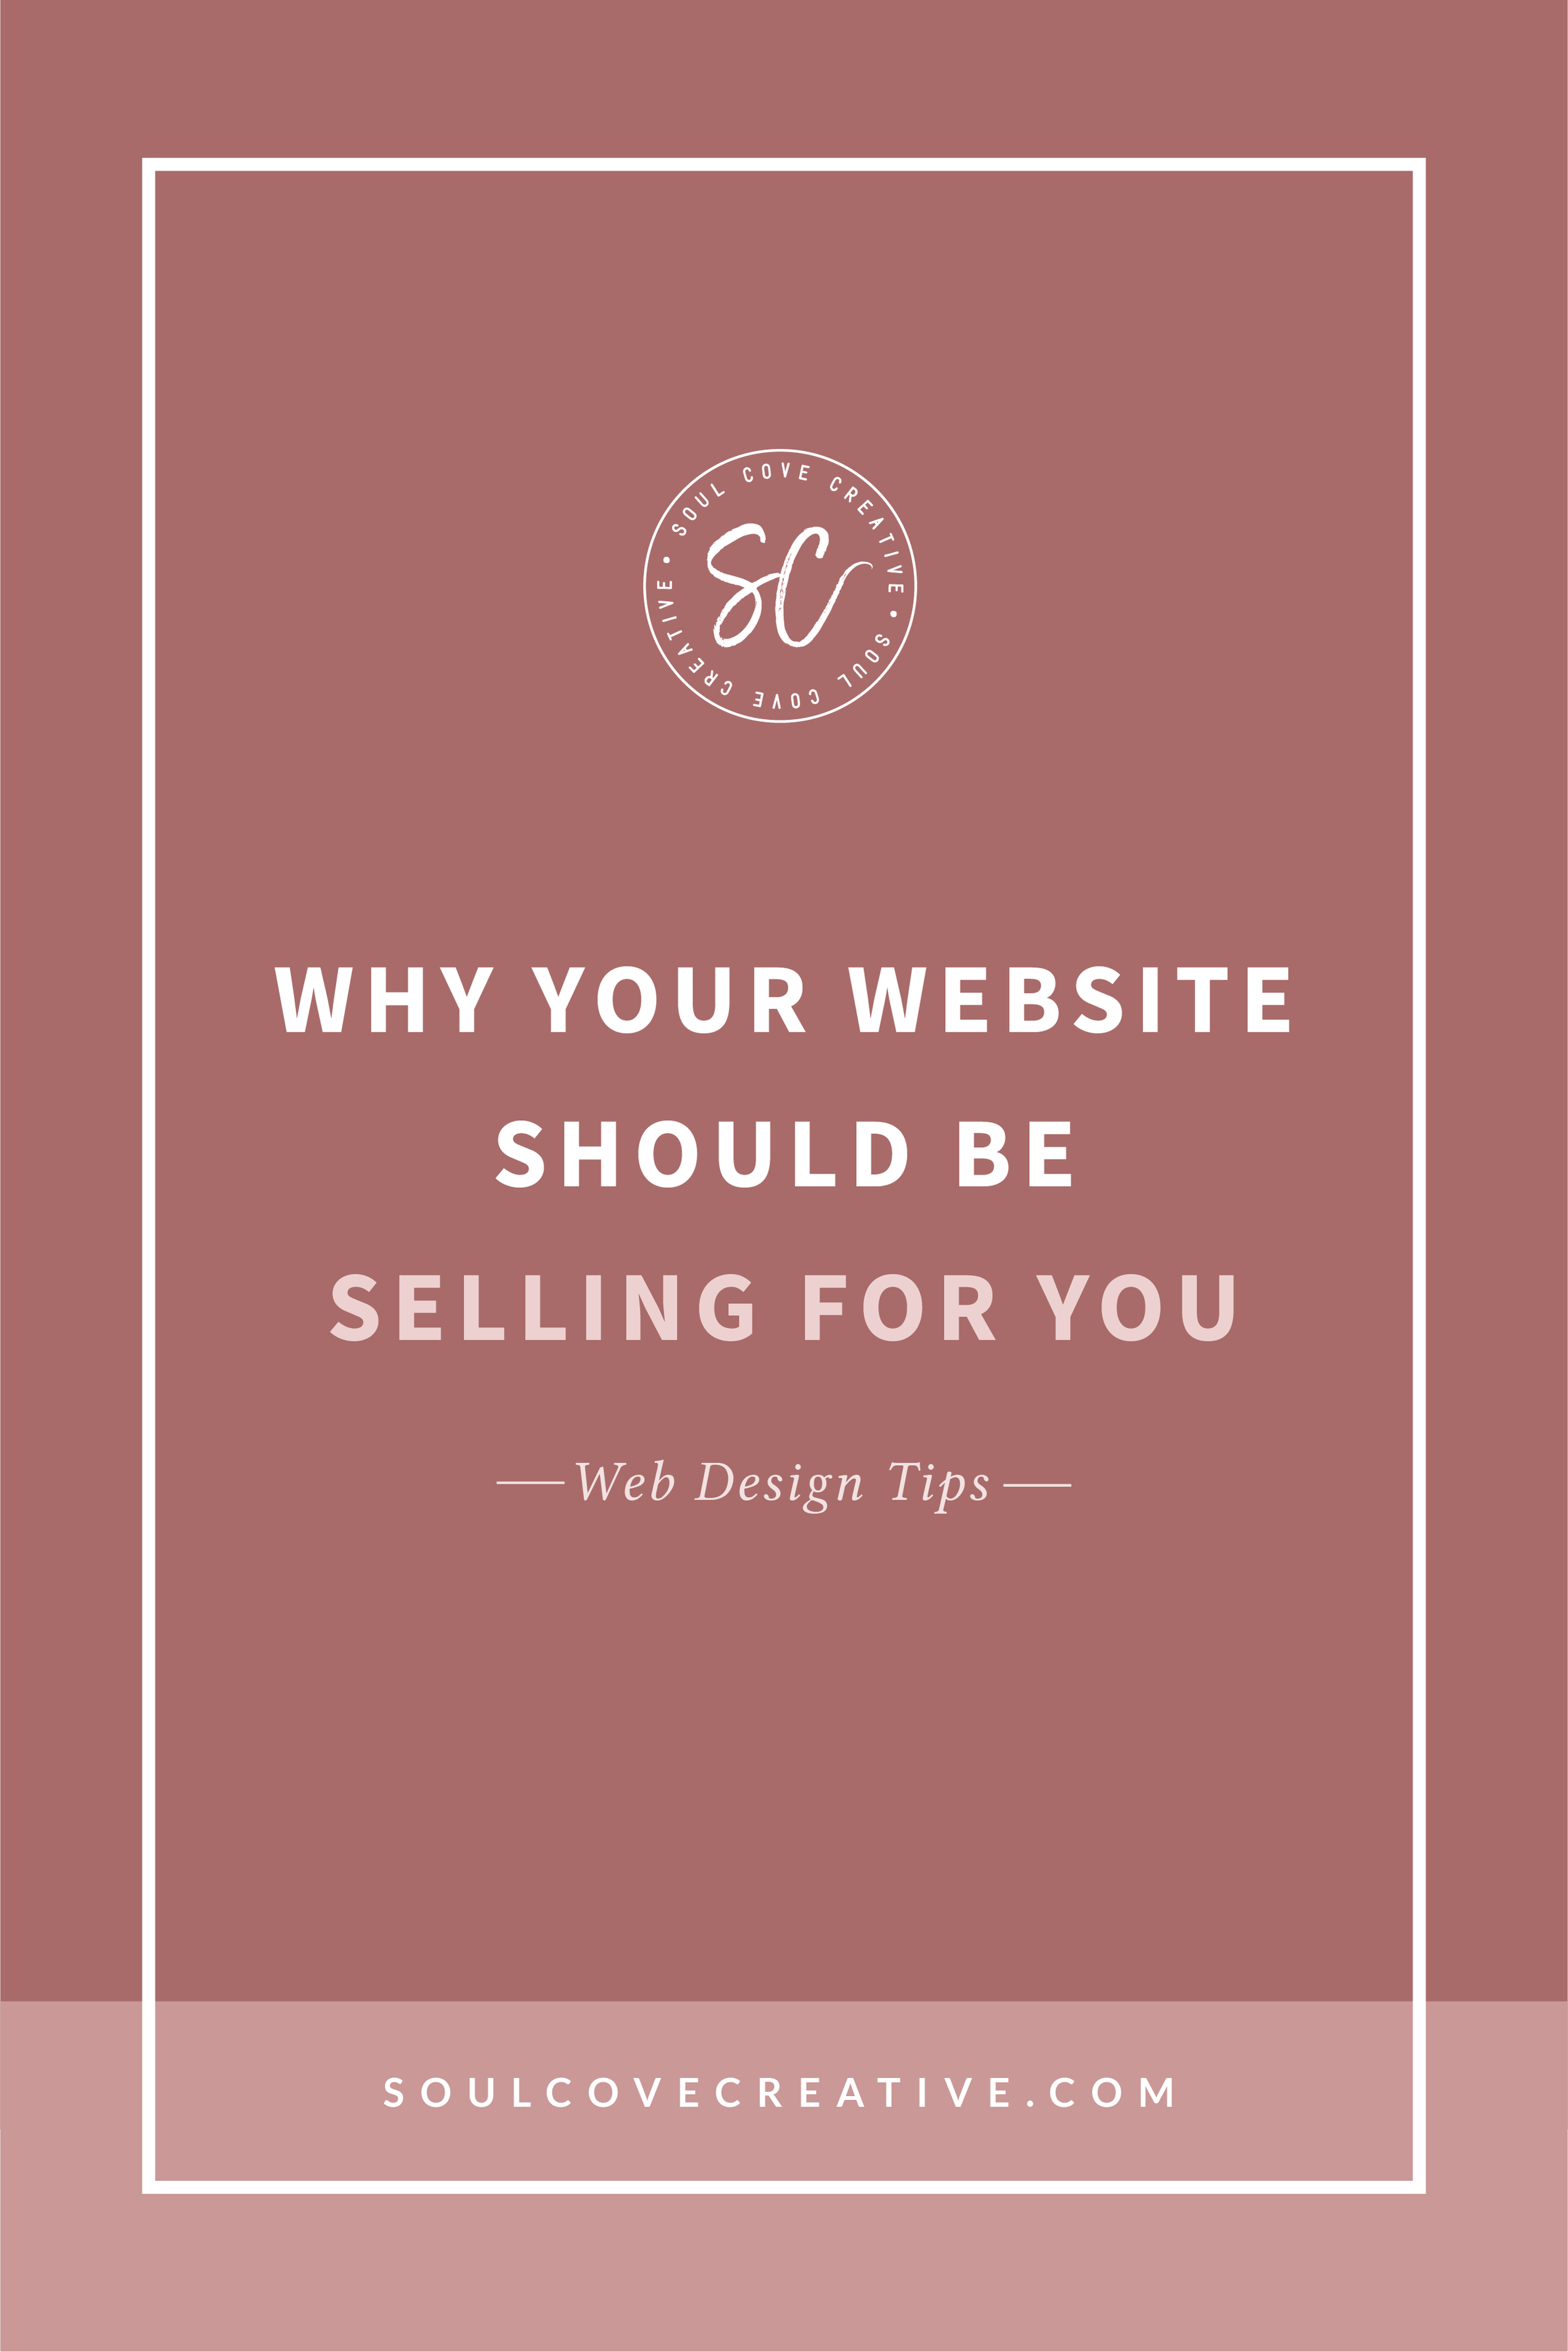 Why your website should be selling for you